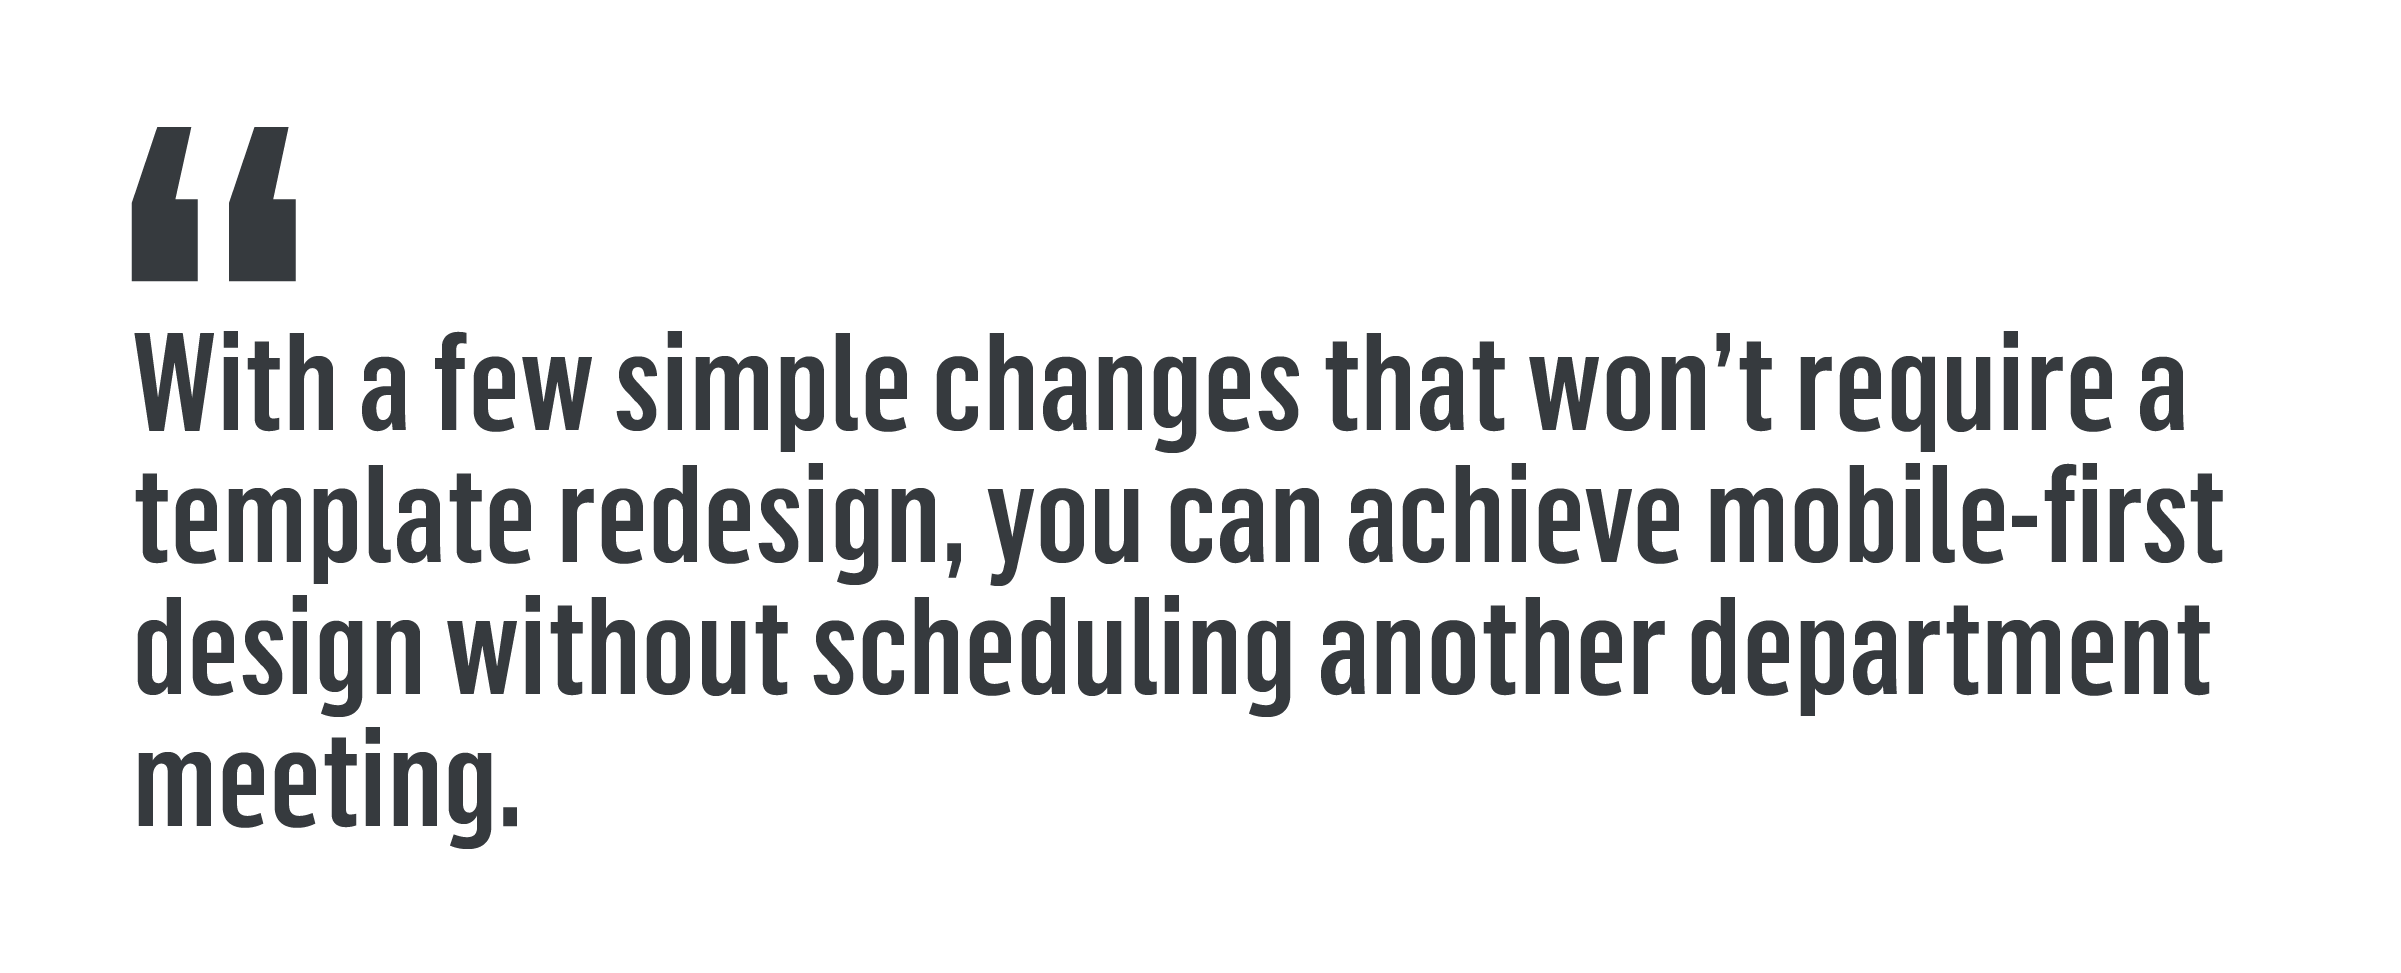 """""""With a few simple changes that won't require a template redesign, you can achieve mobile-first design without scheduling another department meeting."""""""